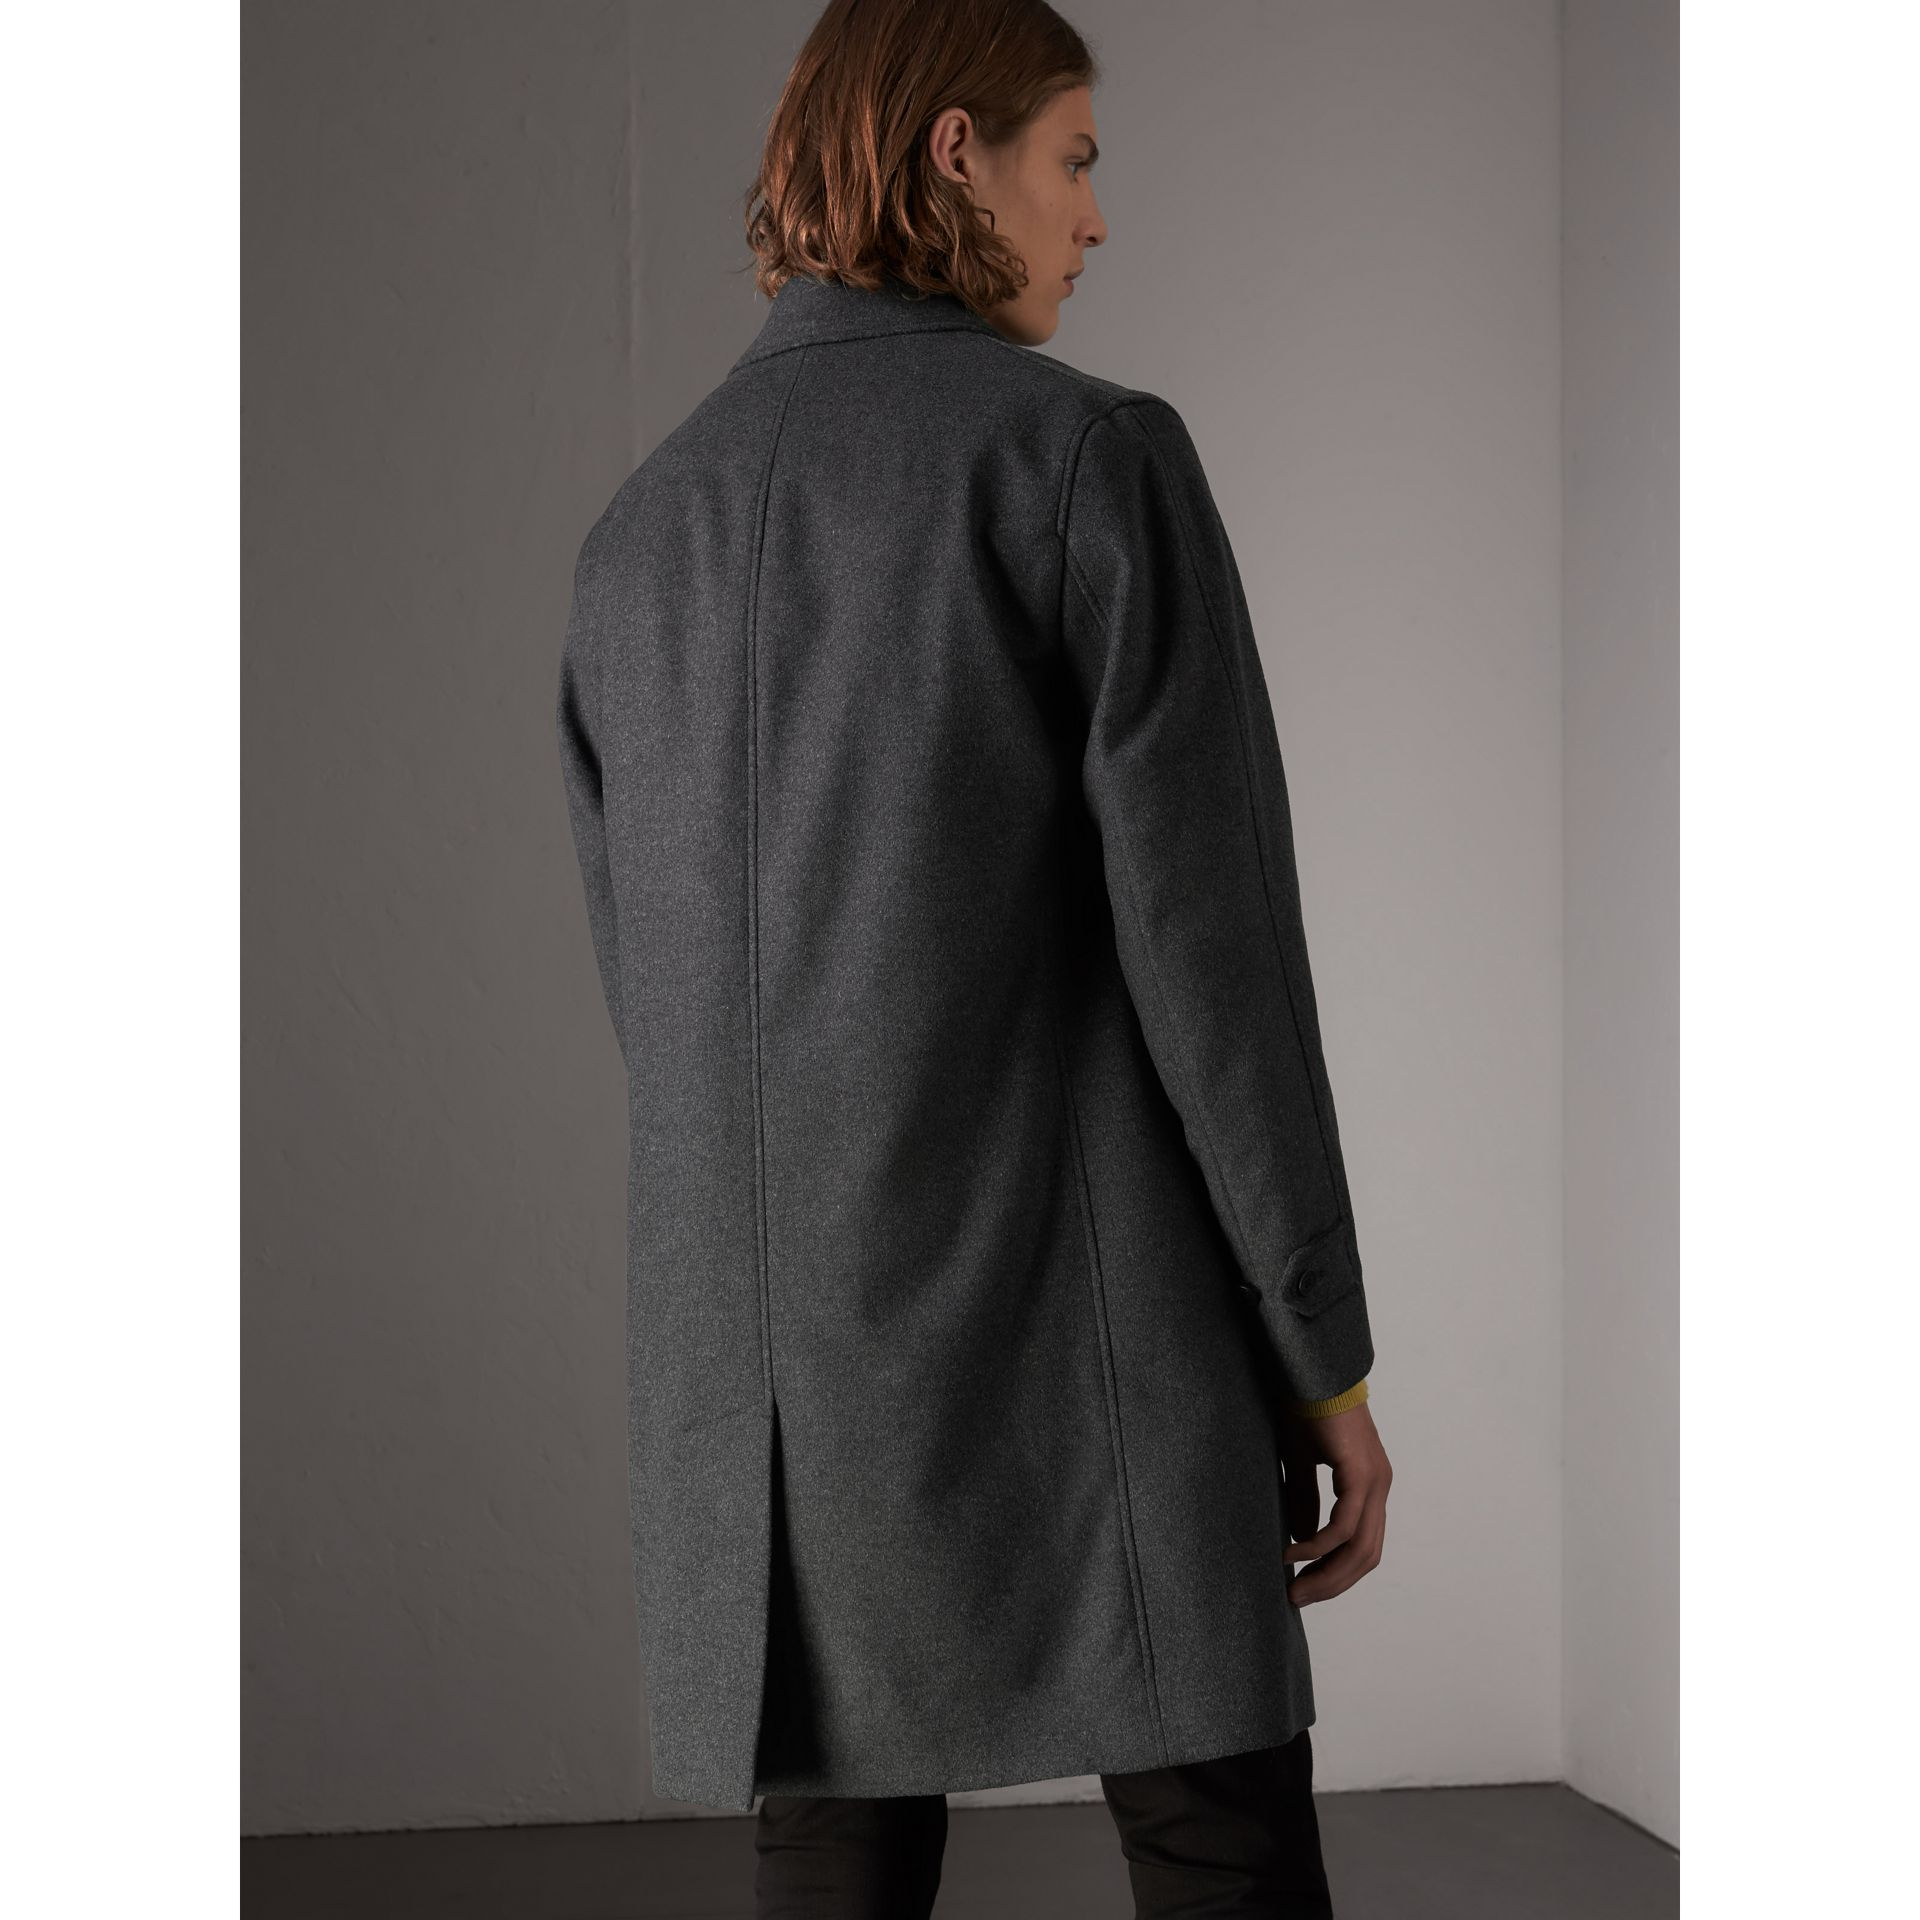 Wool Cashmere Blend Car Coat with Detachable Gilet in Dark Grey Melange - Men | Burberry - gallery image 3